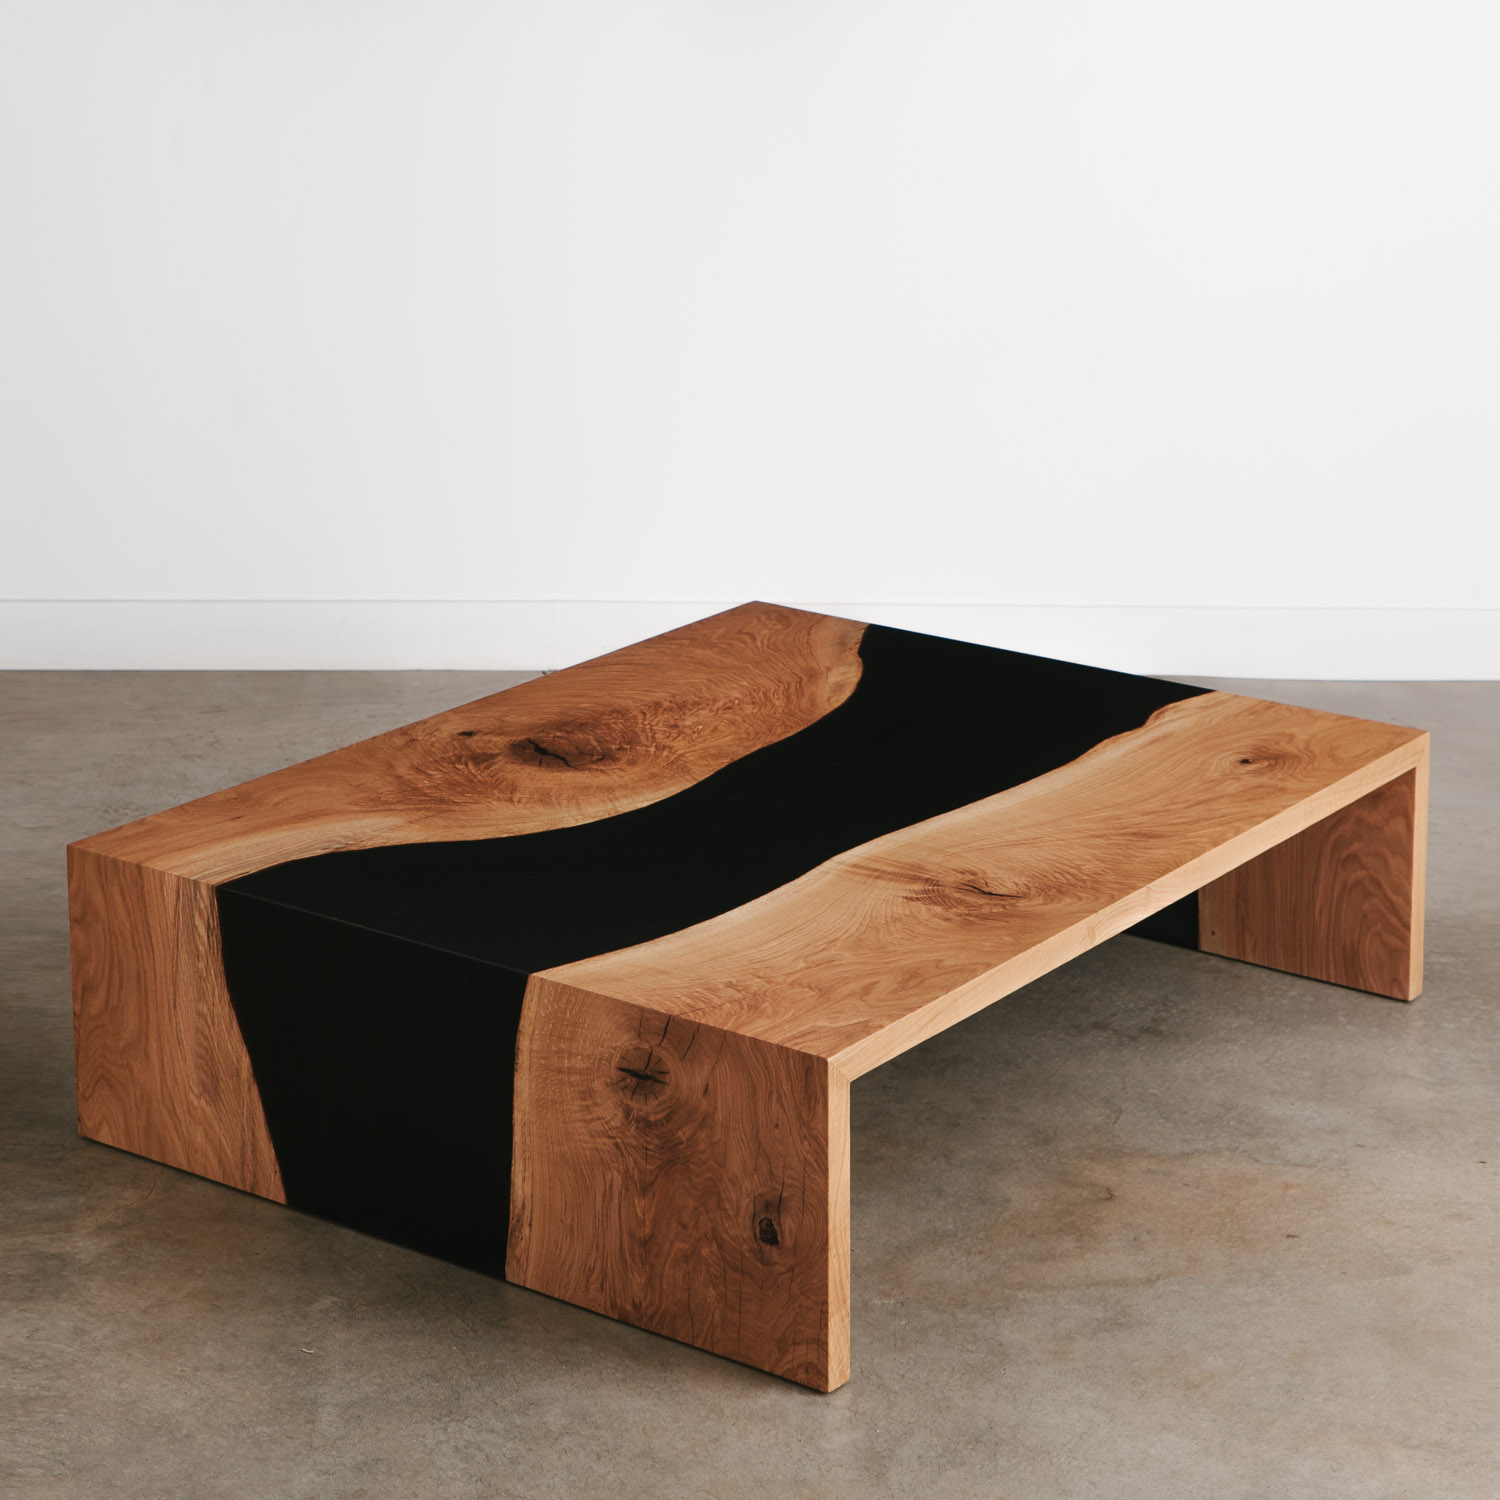 Picture of: Oak Coffee Table No 267 Elko Hardwoods Modern Live Edge Furniture Dining Coffee Tables Desks Benches